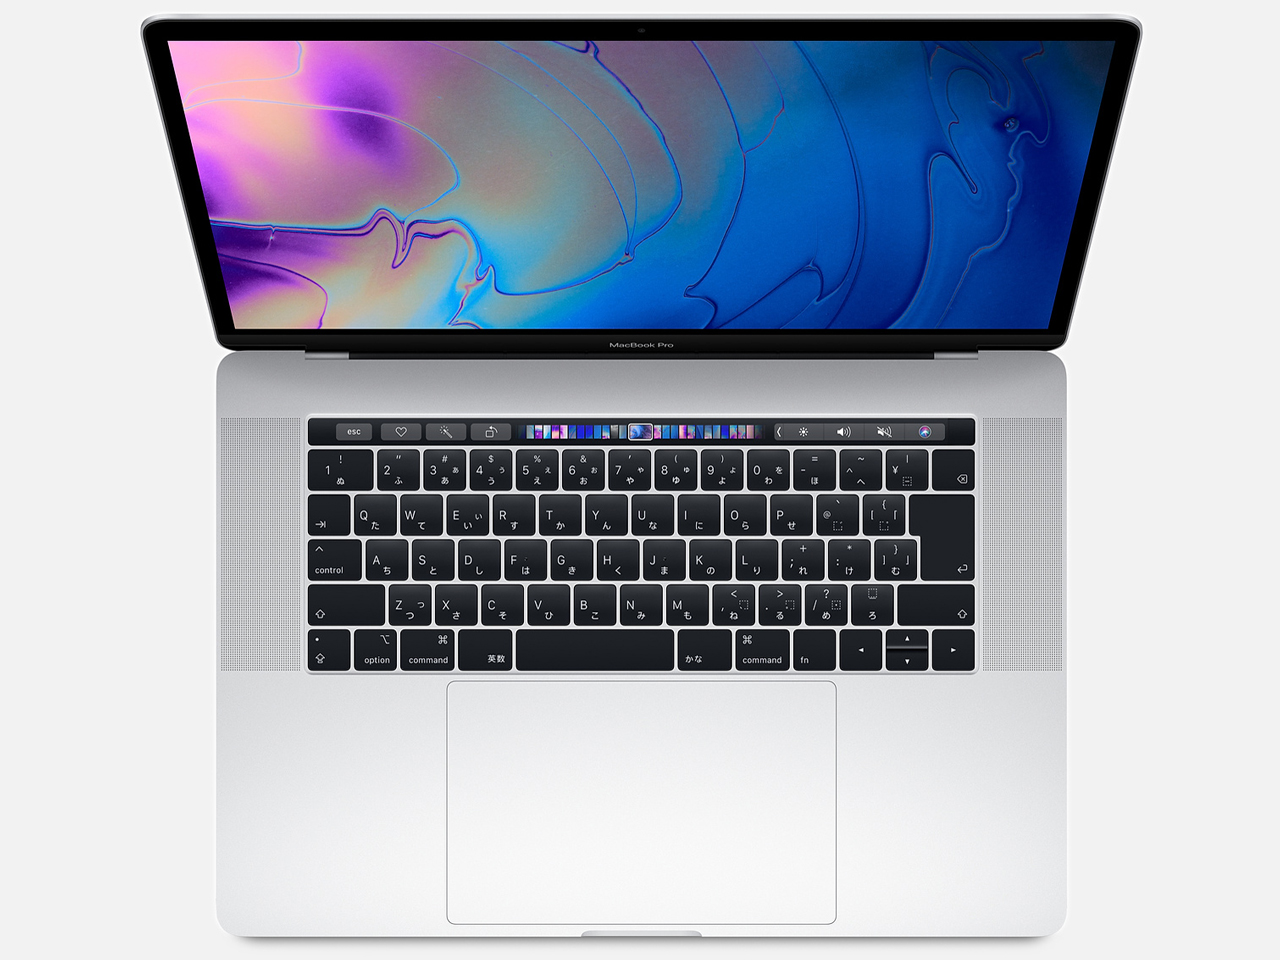 MacBook Pro (Retina, 15.4-inch, SSD 256GB, Touch Bar, 2019) MV922J/A シルバー